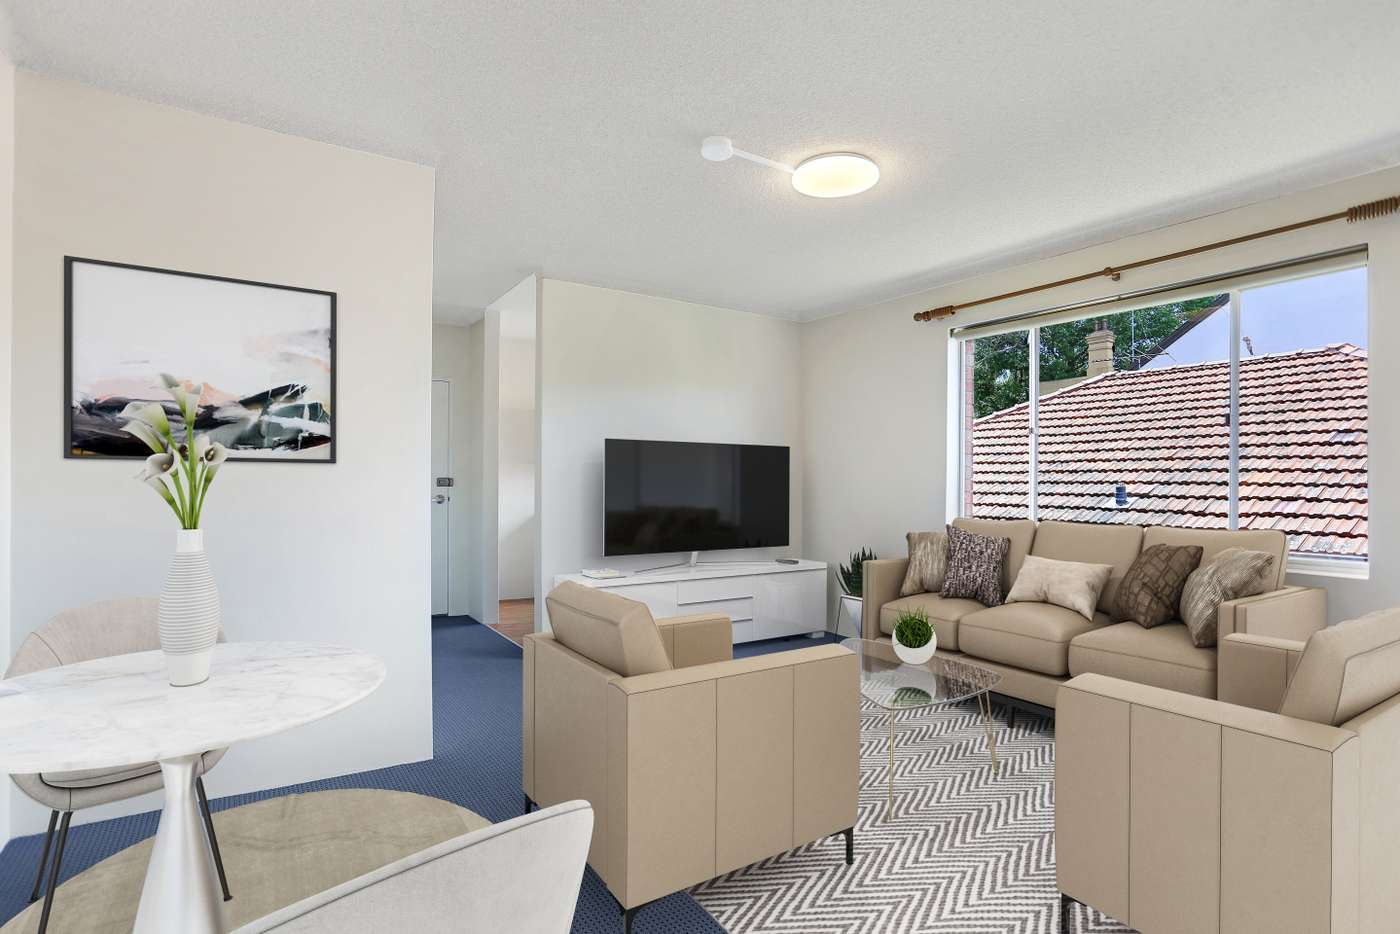 Main view of Homely apartment listing, 6/77 Cavendish Street, Stanmore NSW 2048